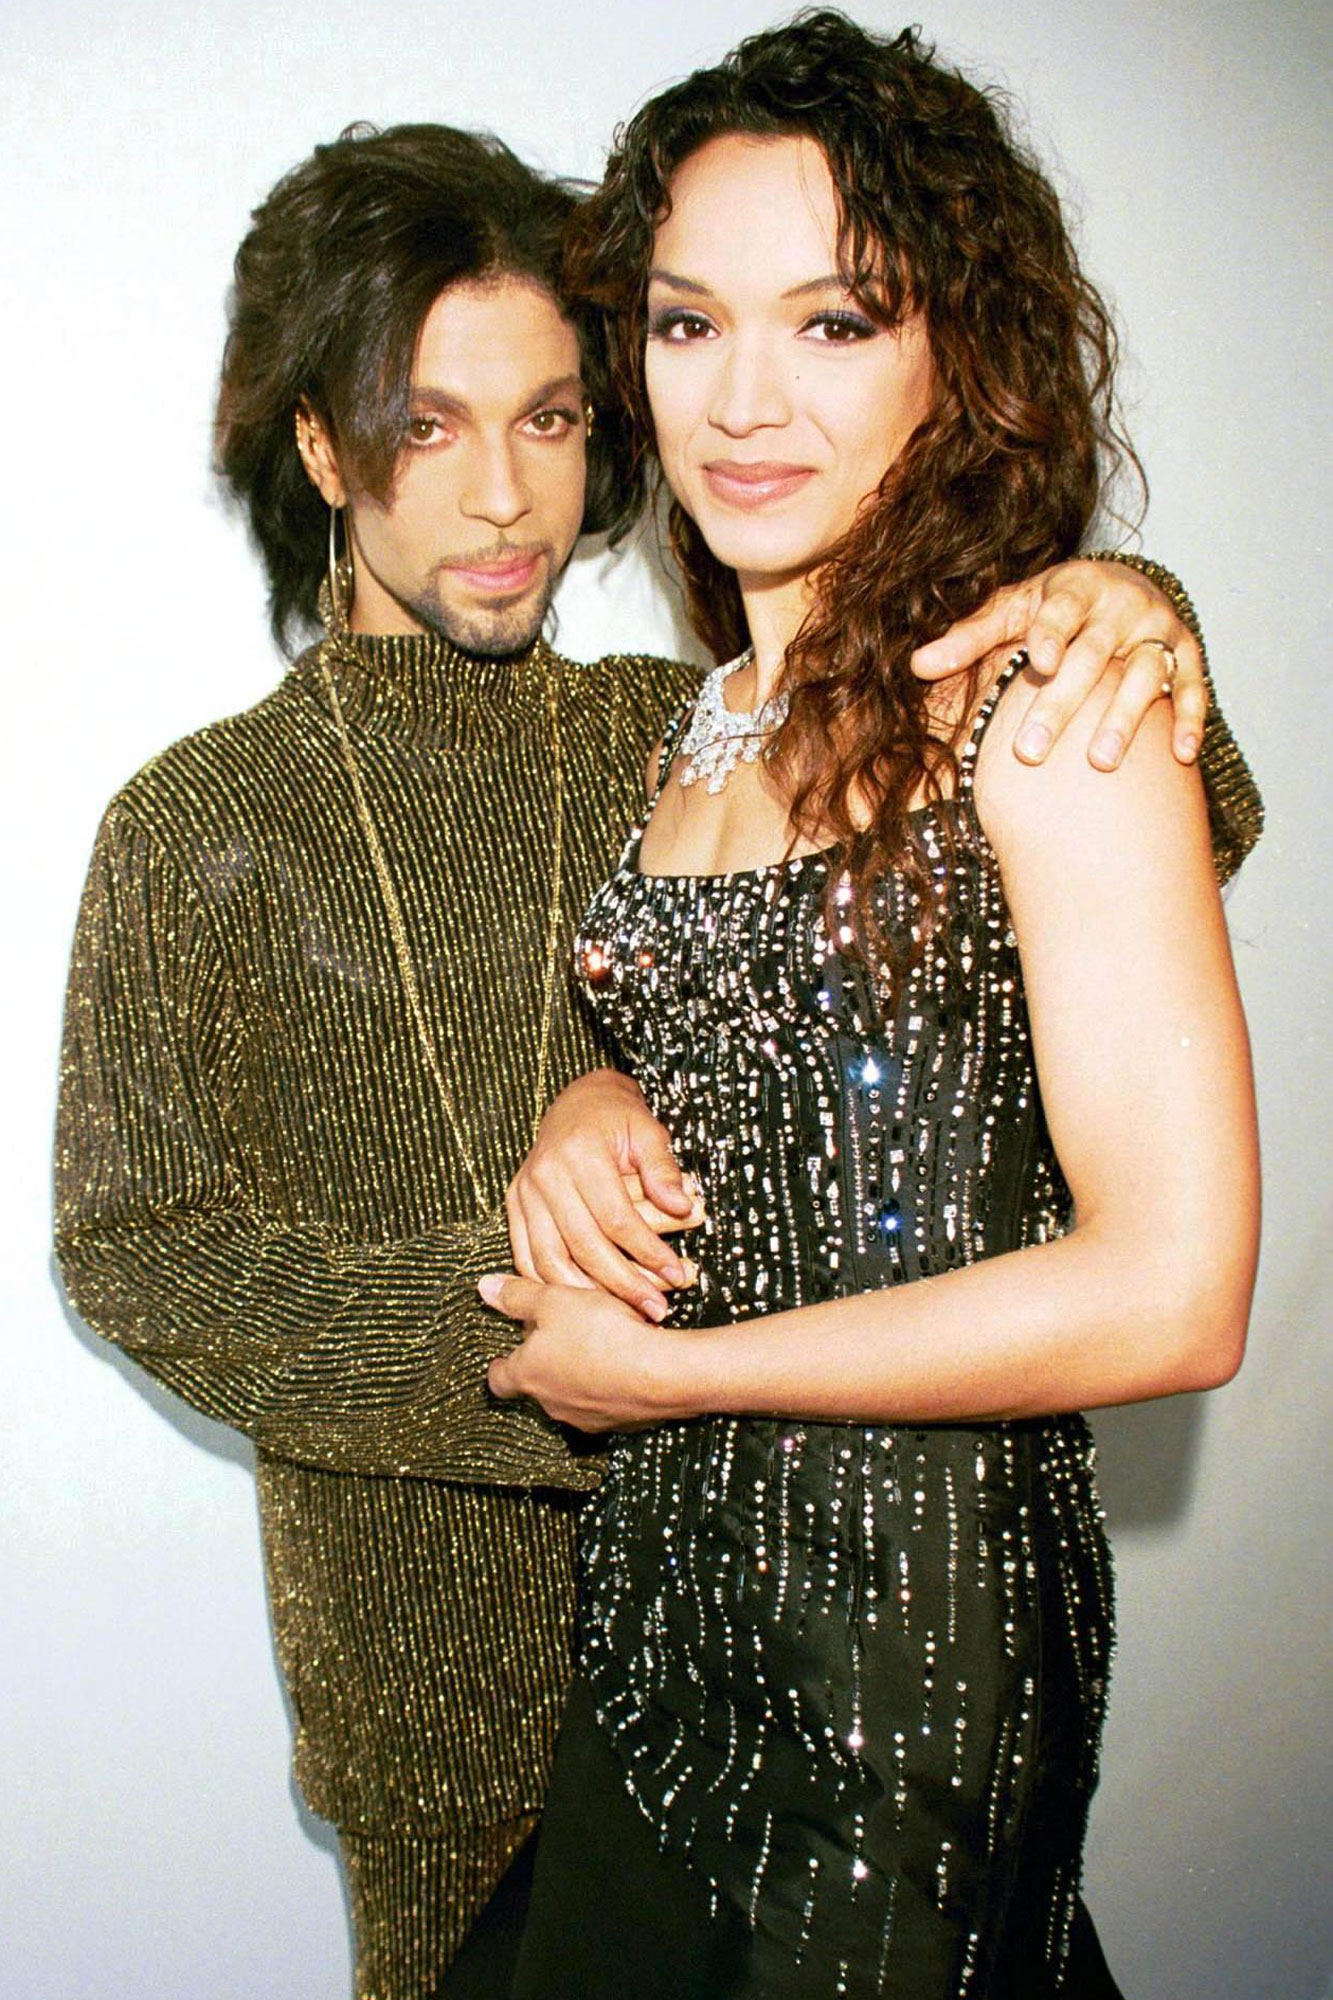 Prince with Mayte Garcia